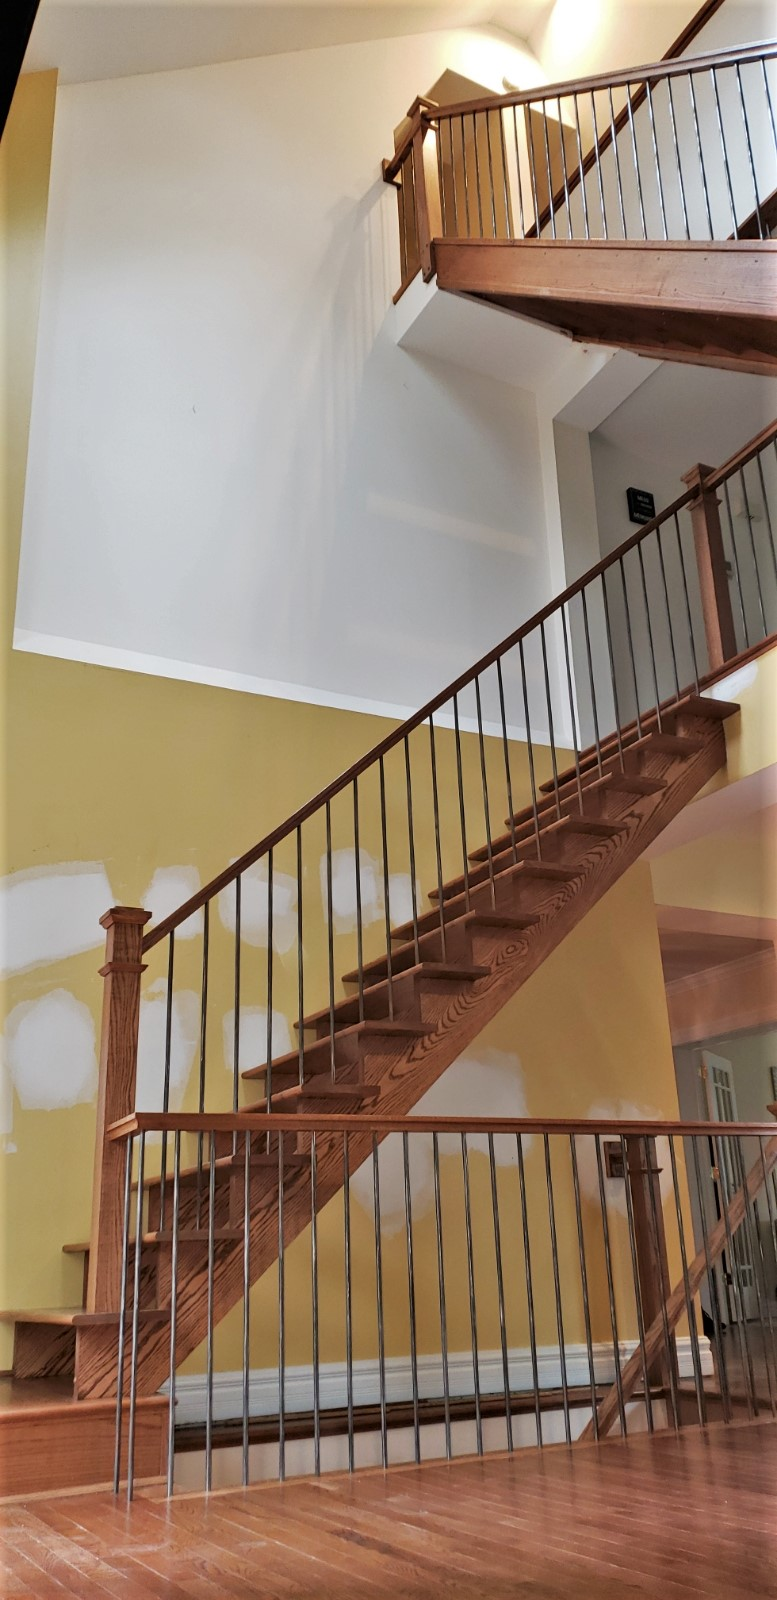 Floating Oak Stairway with Stainless Steel Balusters